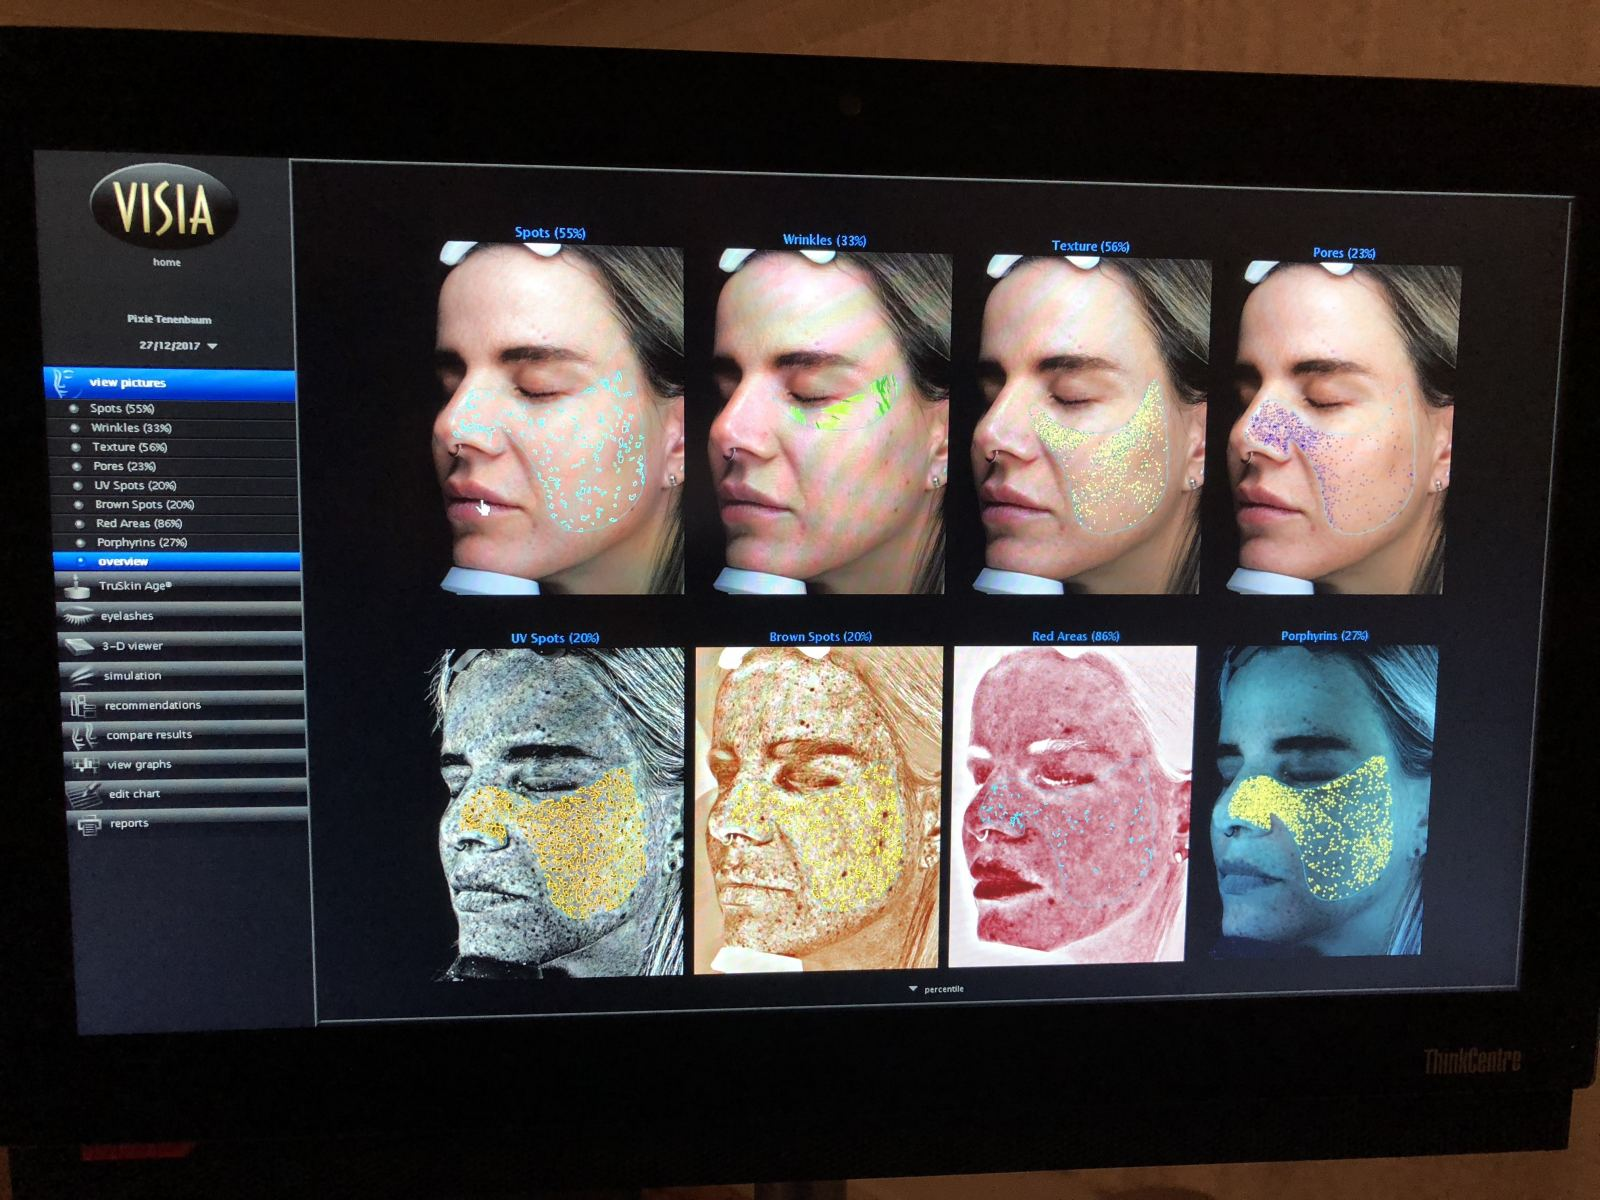 A screenshot of the photographs taken during a Visia Skin Assessment at Aesthetic Beauty Centre in Newcastle, showing pixie Tenenbaum's face close up